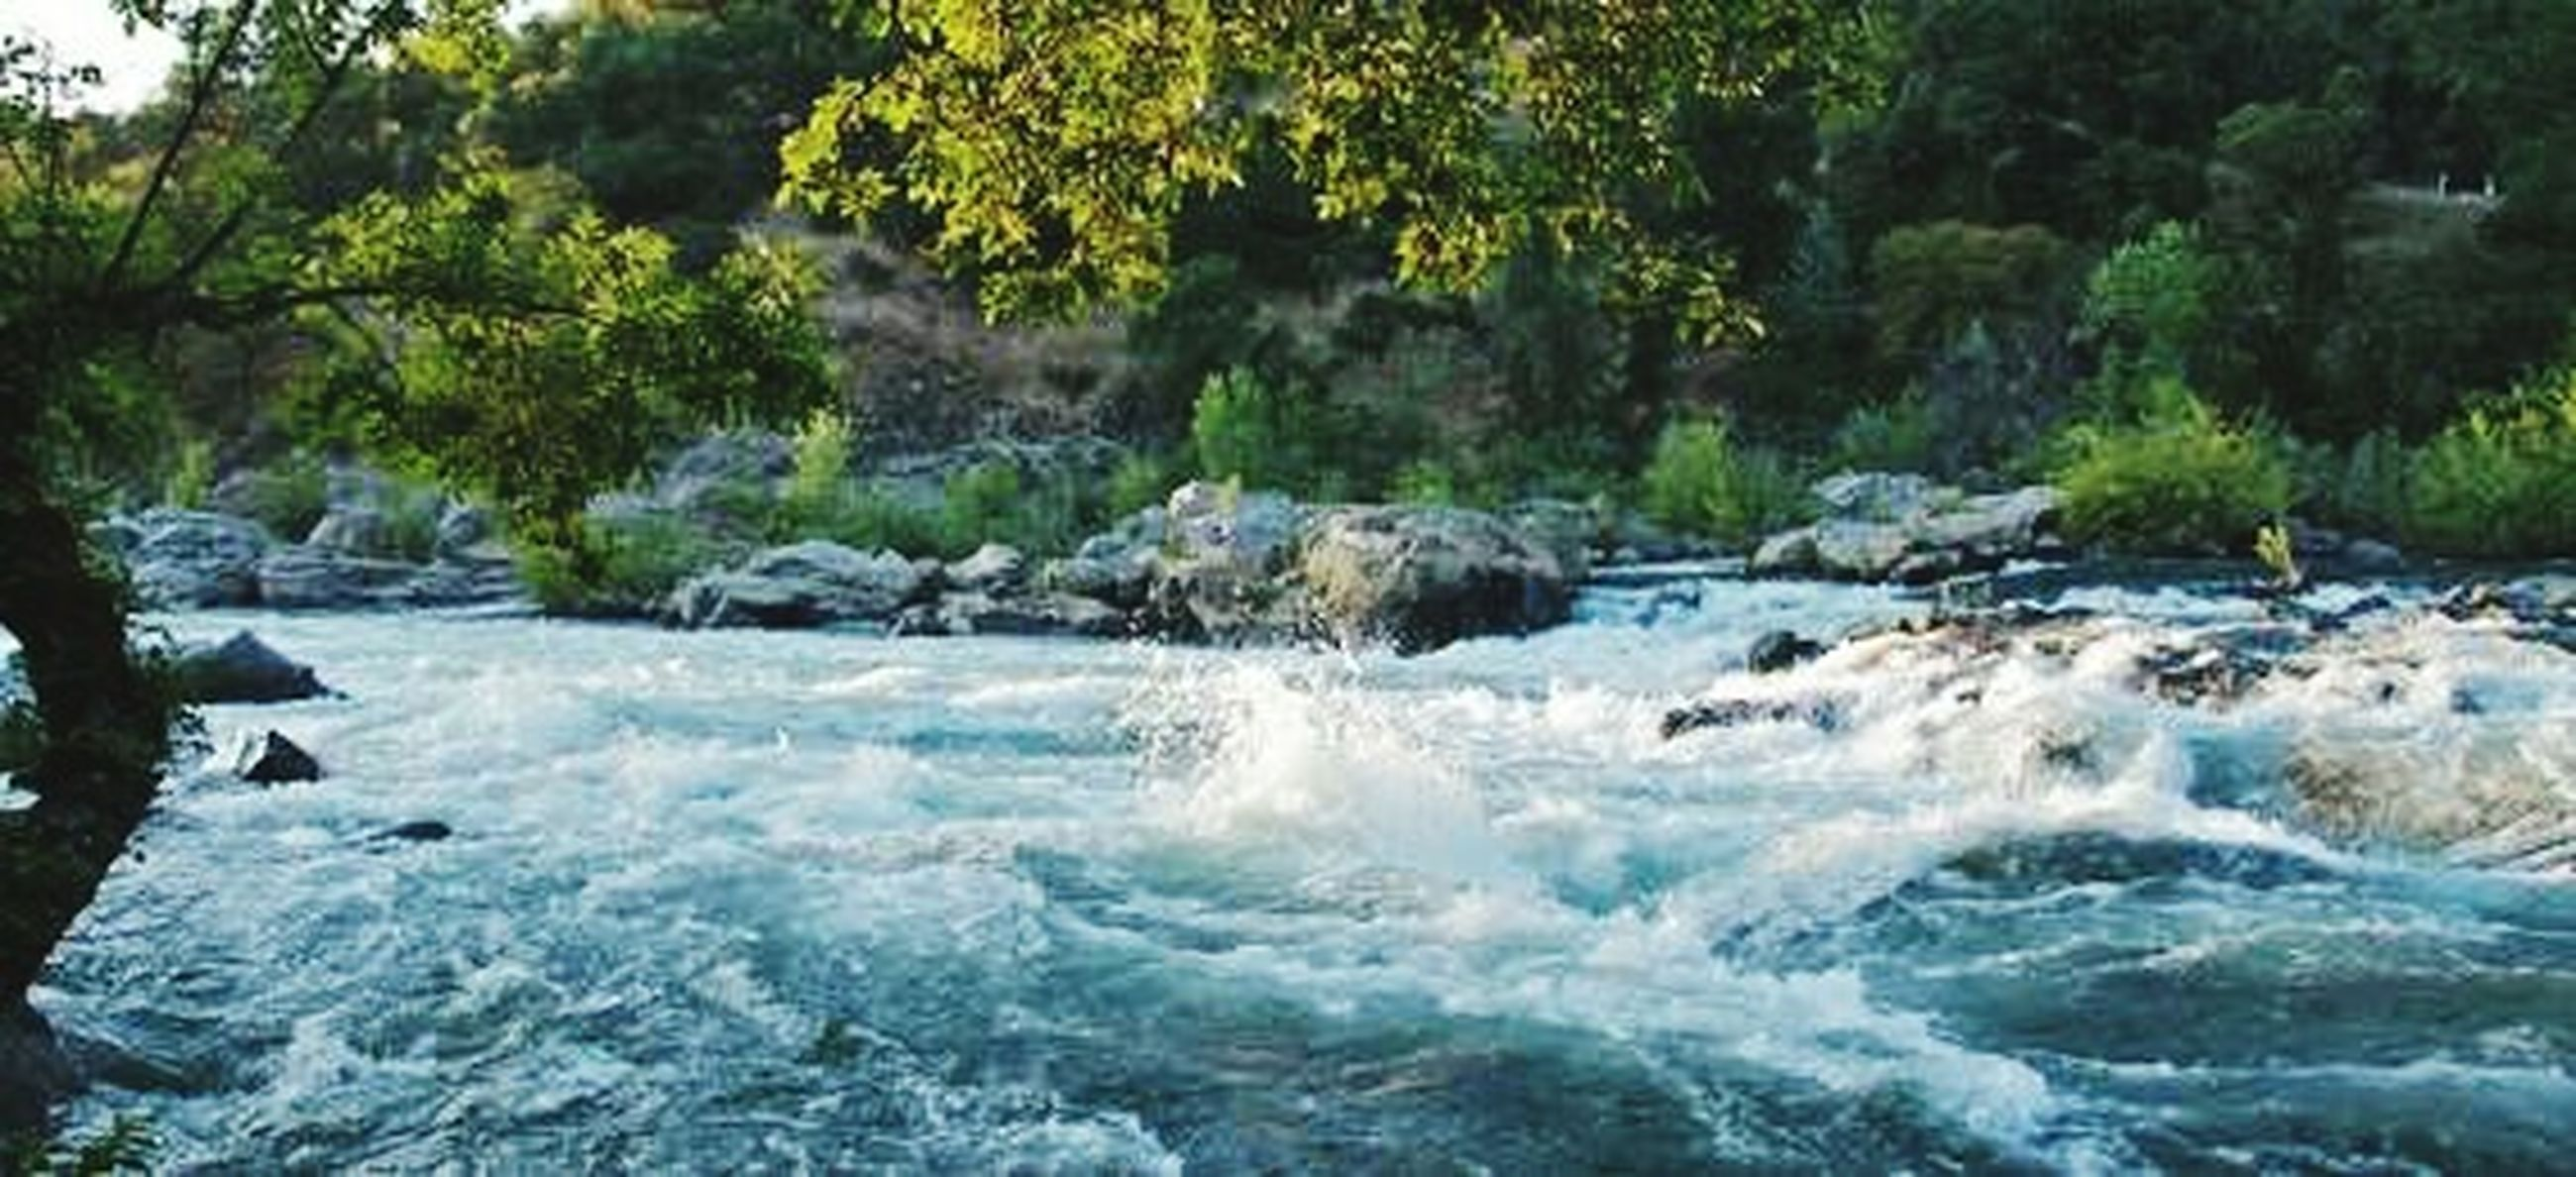 water, nature, motion, beauty in nature, waterfall, flowing, outdoors, no people, splashing, scenics, day, tree